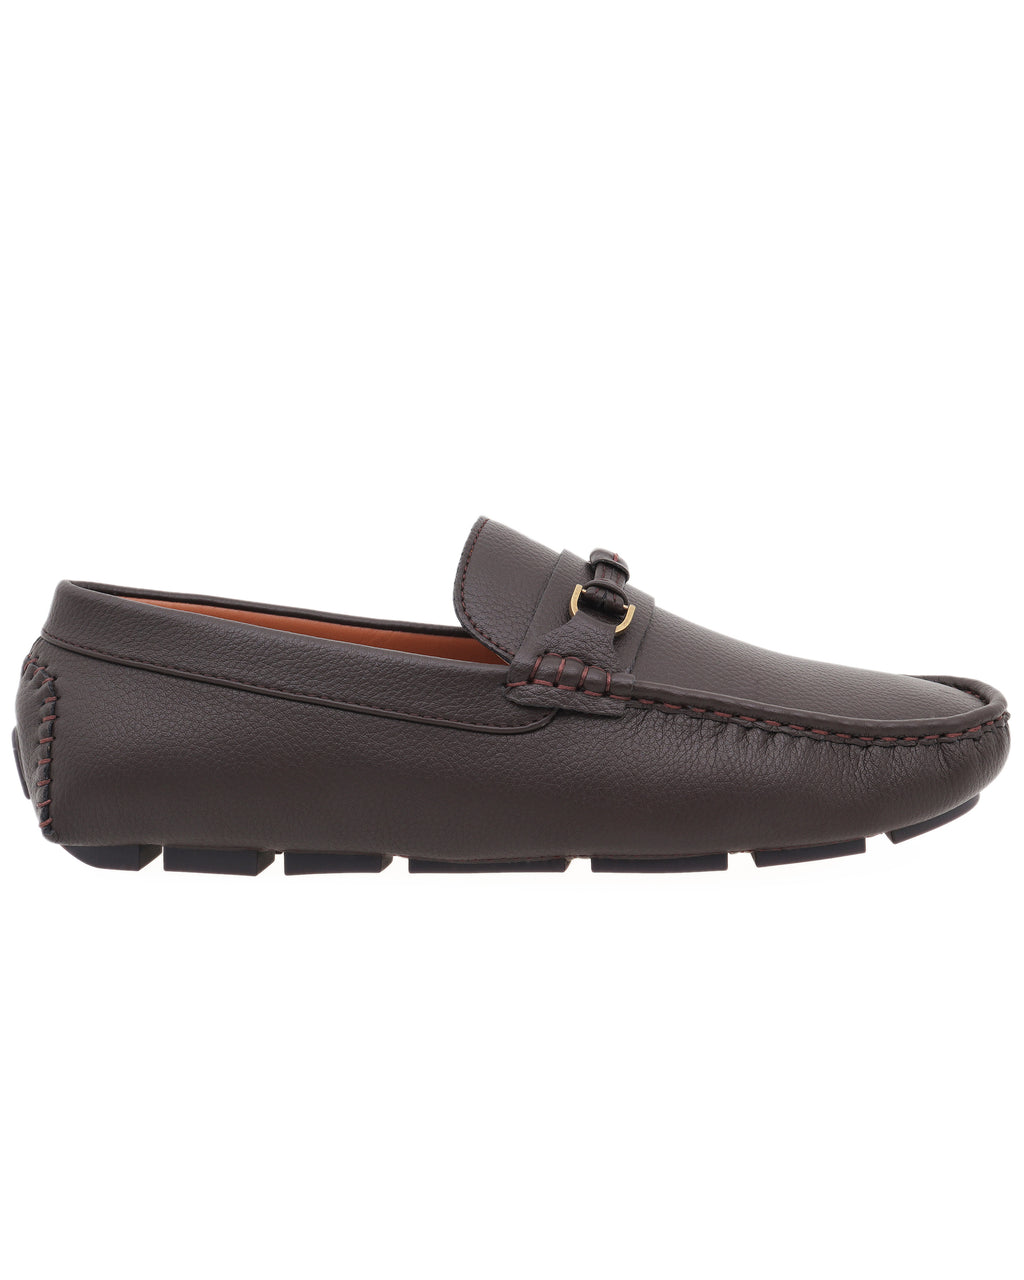 Tomaz C475 Buckle Leather Strap Moccasins (Coffee)